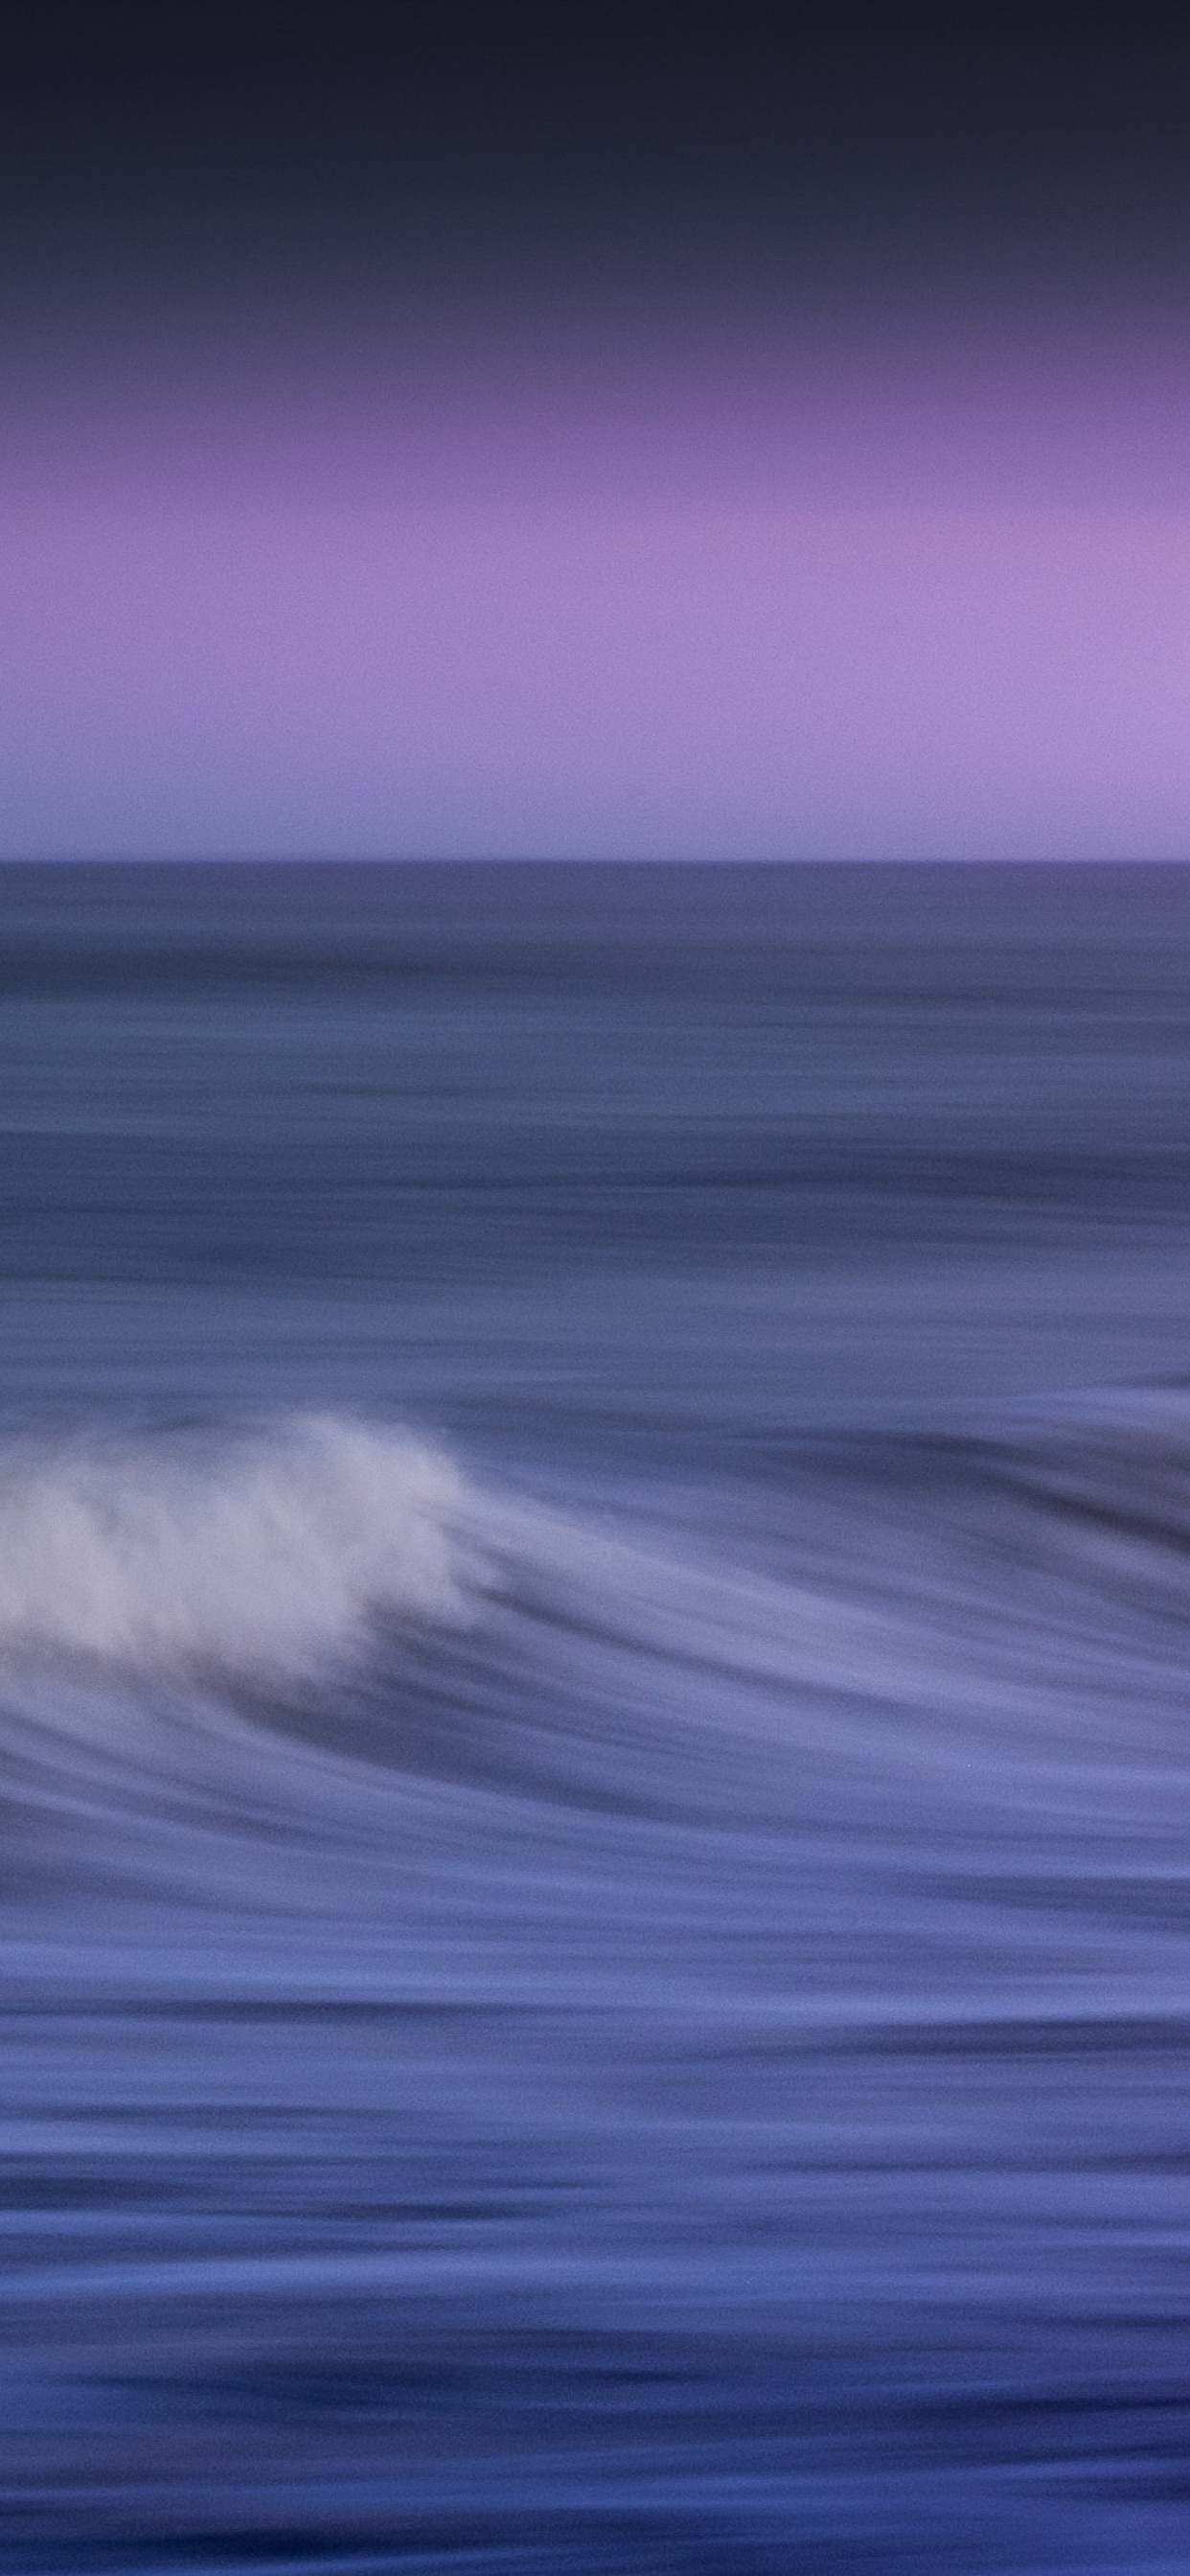 1242x2688 Purple Ocean Iphone Xs Max Hd 4k Wallpapers Images